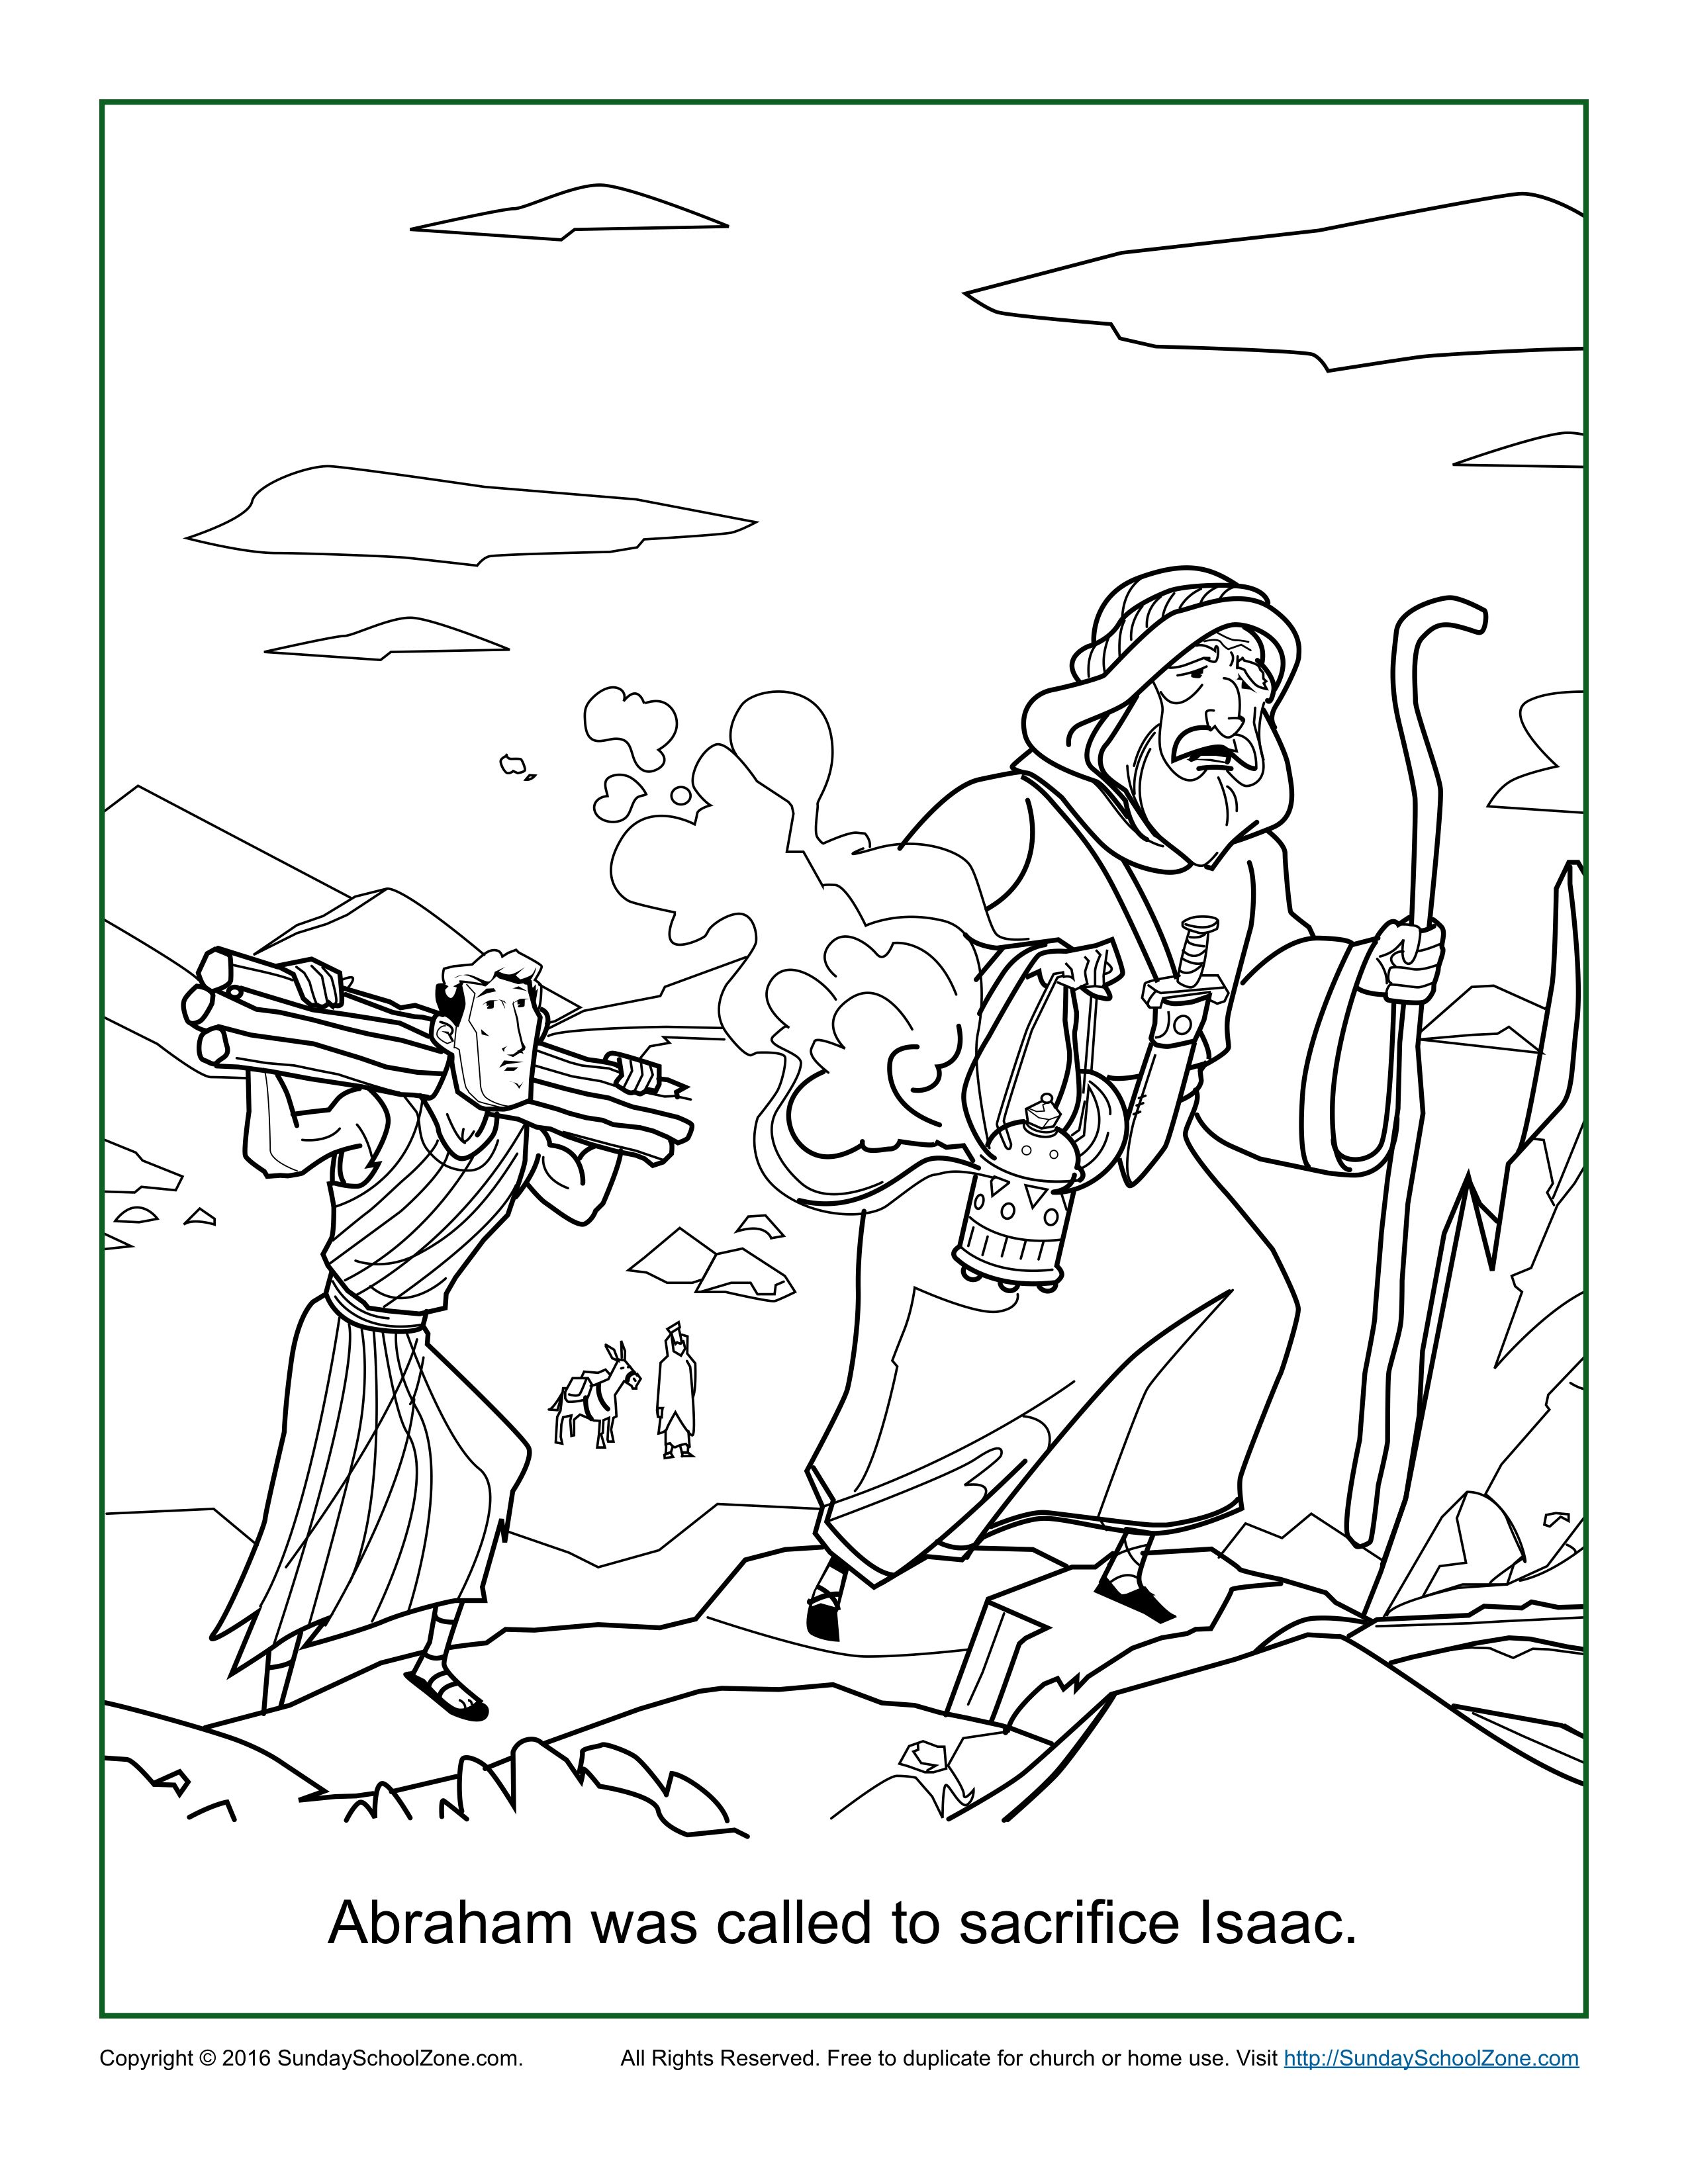 Abraham Was Called to Sacrifice Isaac Coloring Page - Children's Bible  Activities   Sunday School Activities for Kids   Sunday school coloring  pages [ 3300 x 2550 Pixel ]